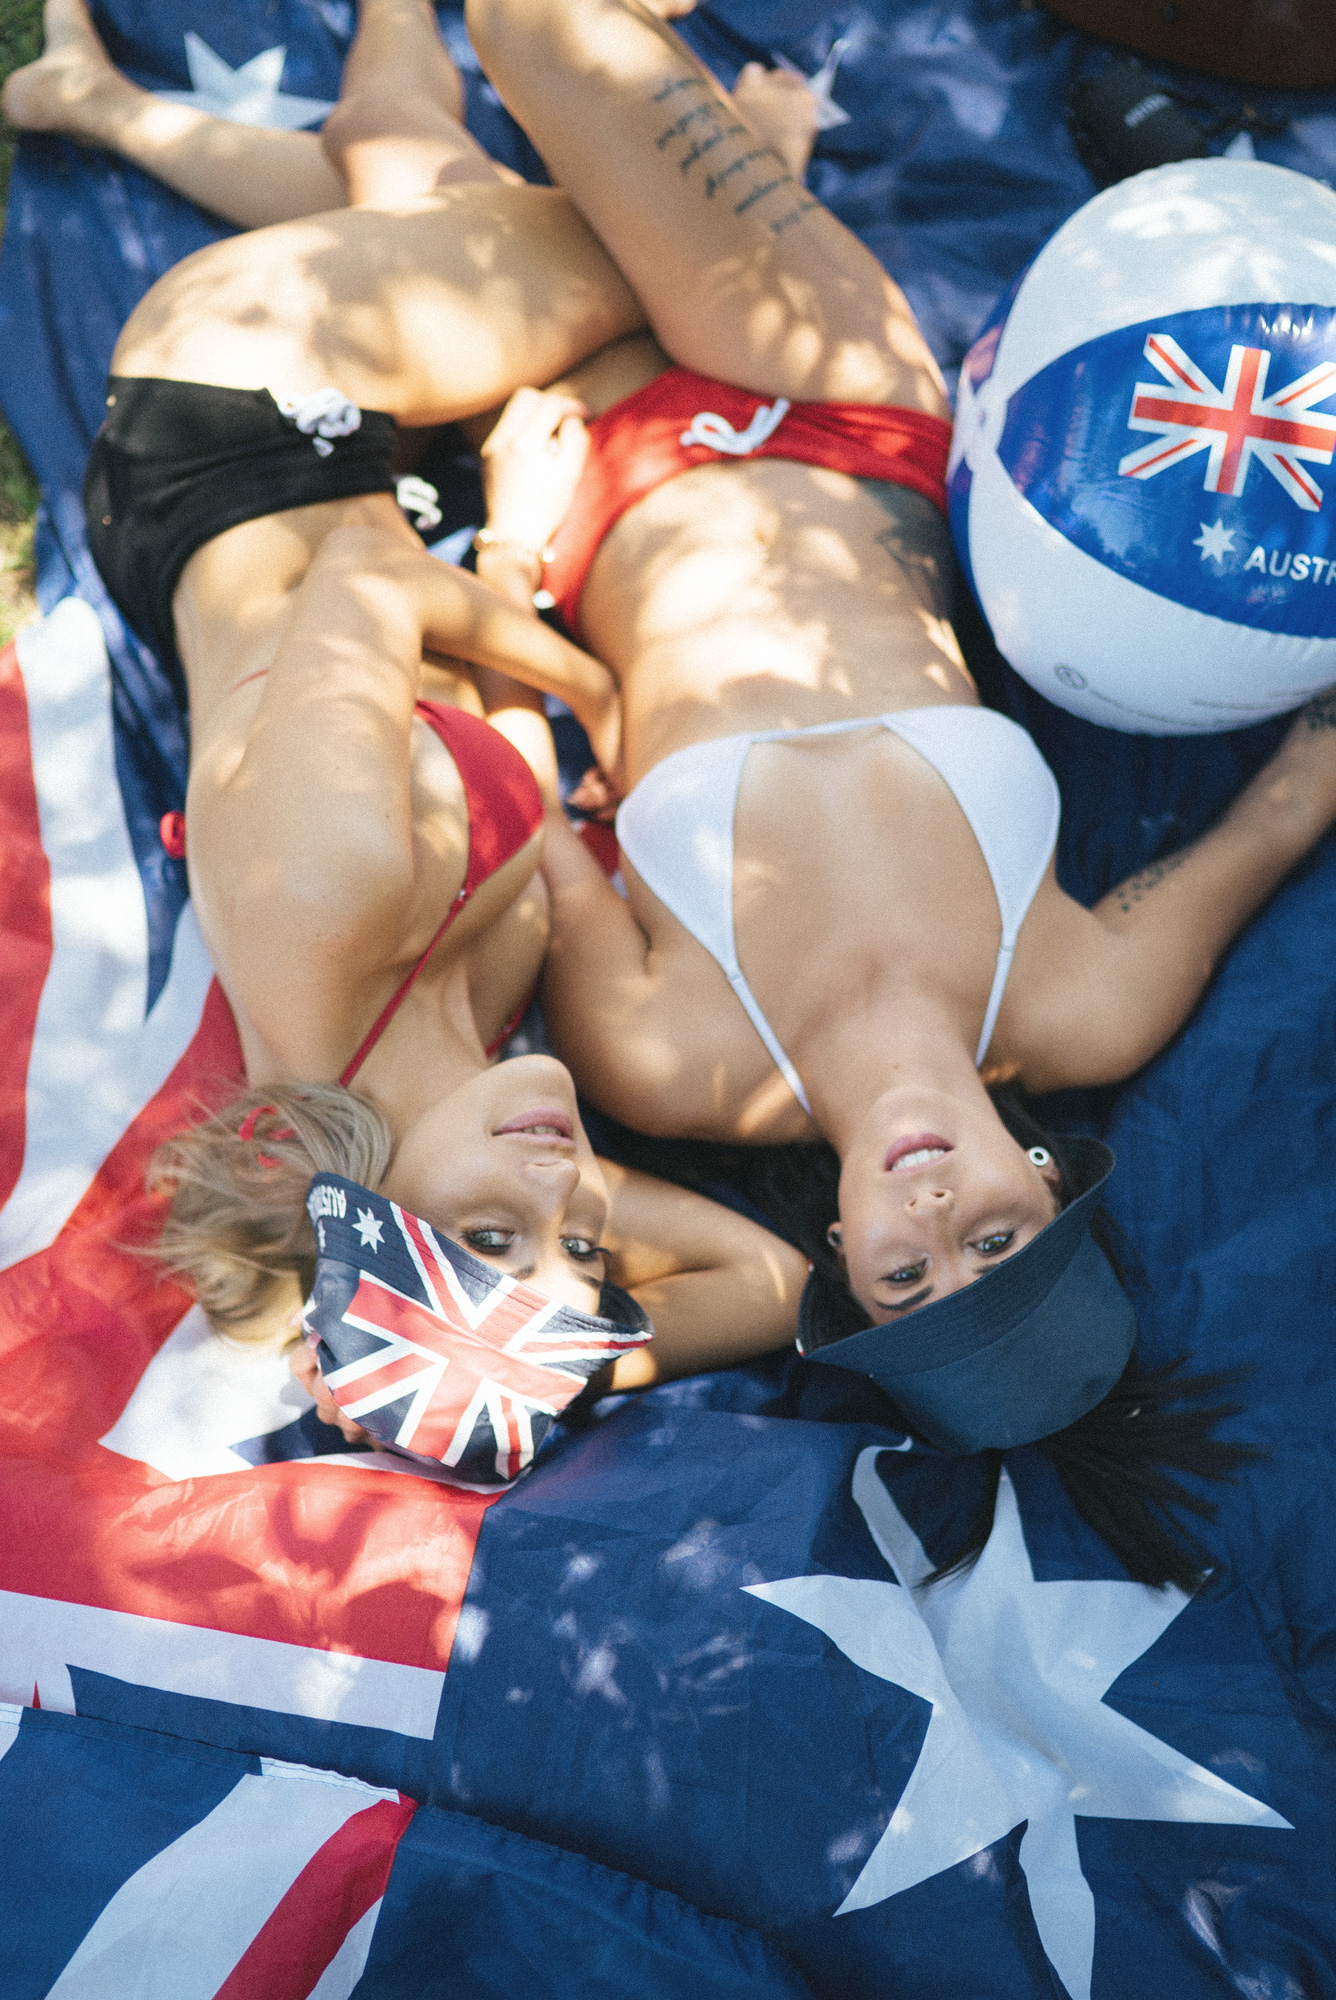 australiaday_babes_garden_shoot_justinfox_above_2